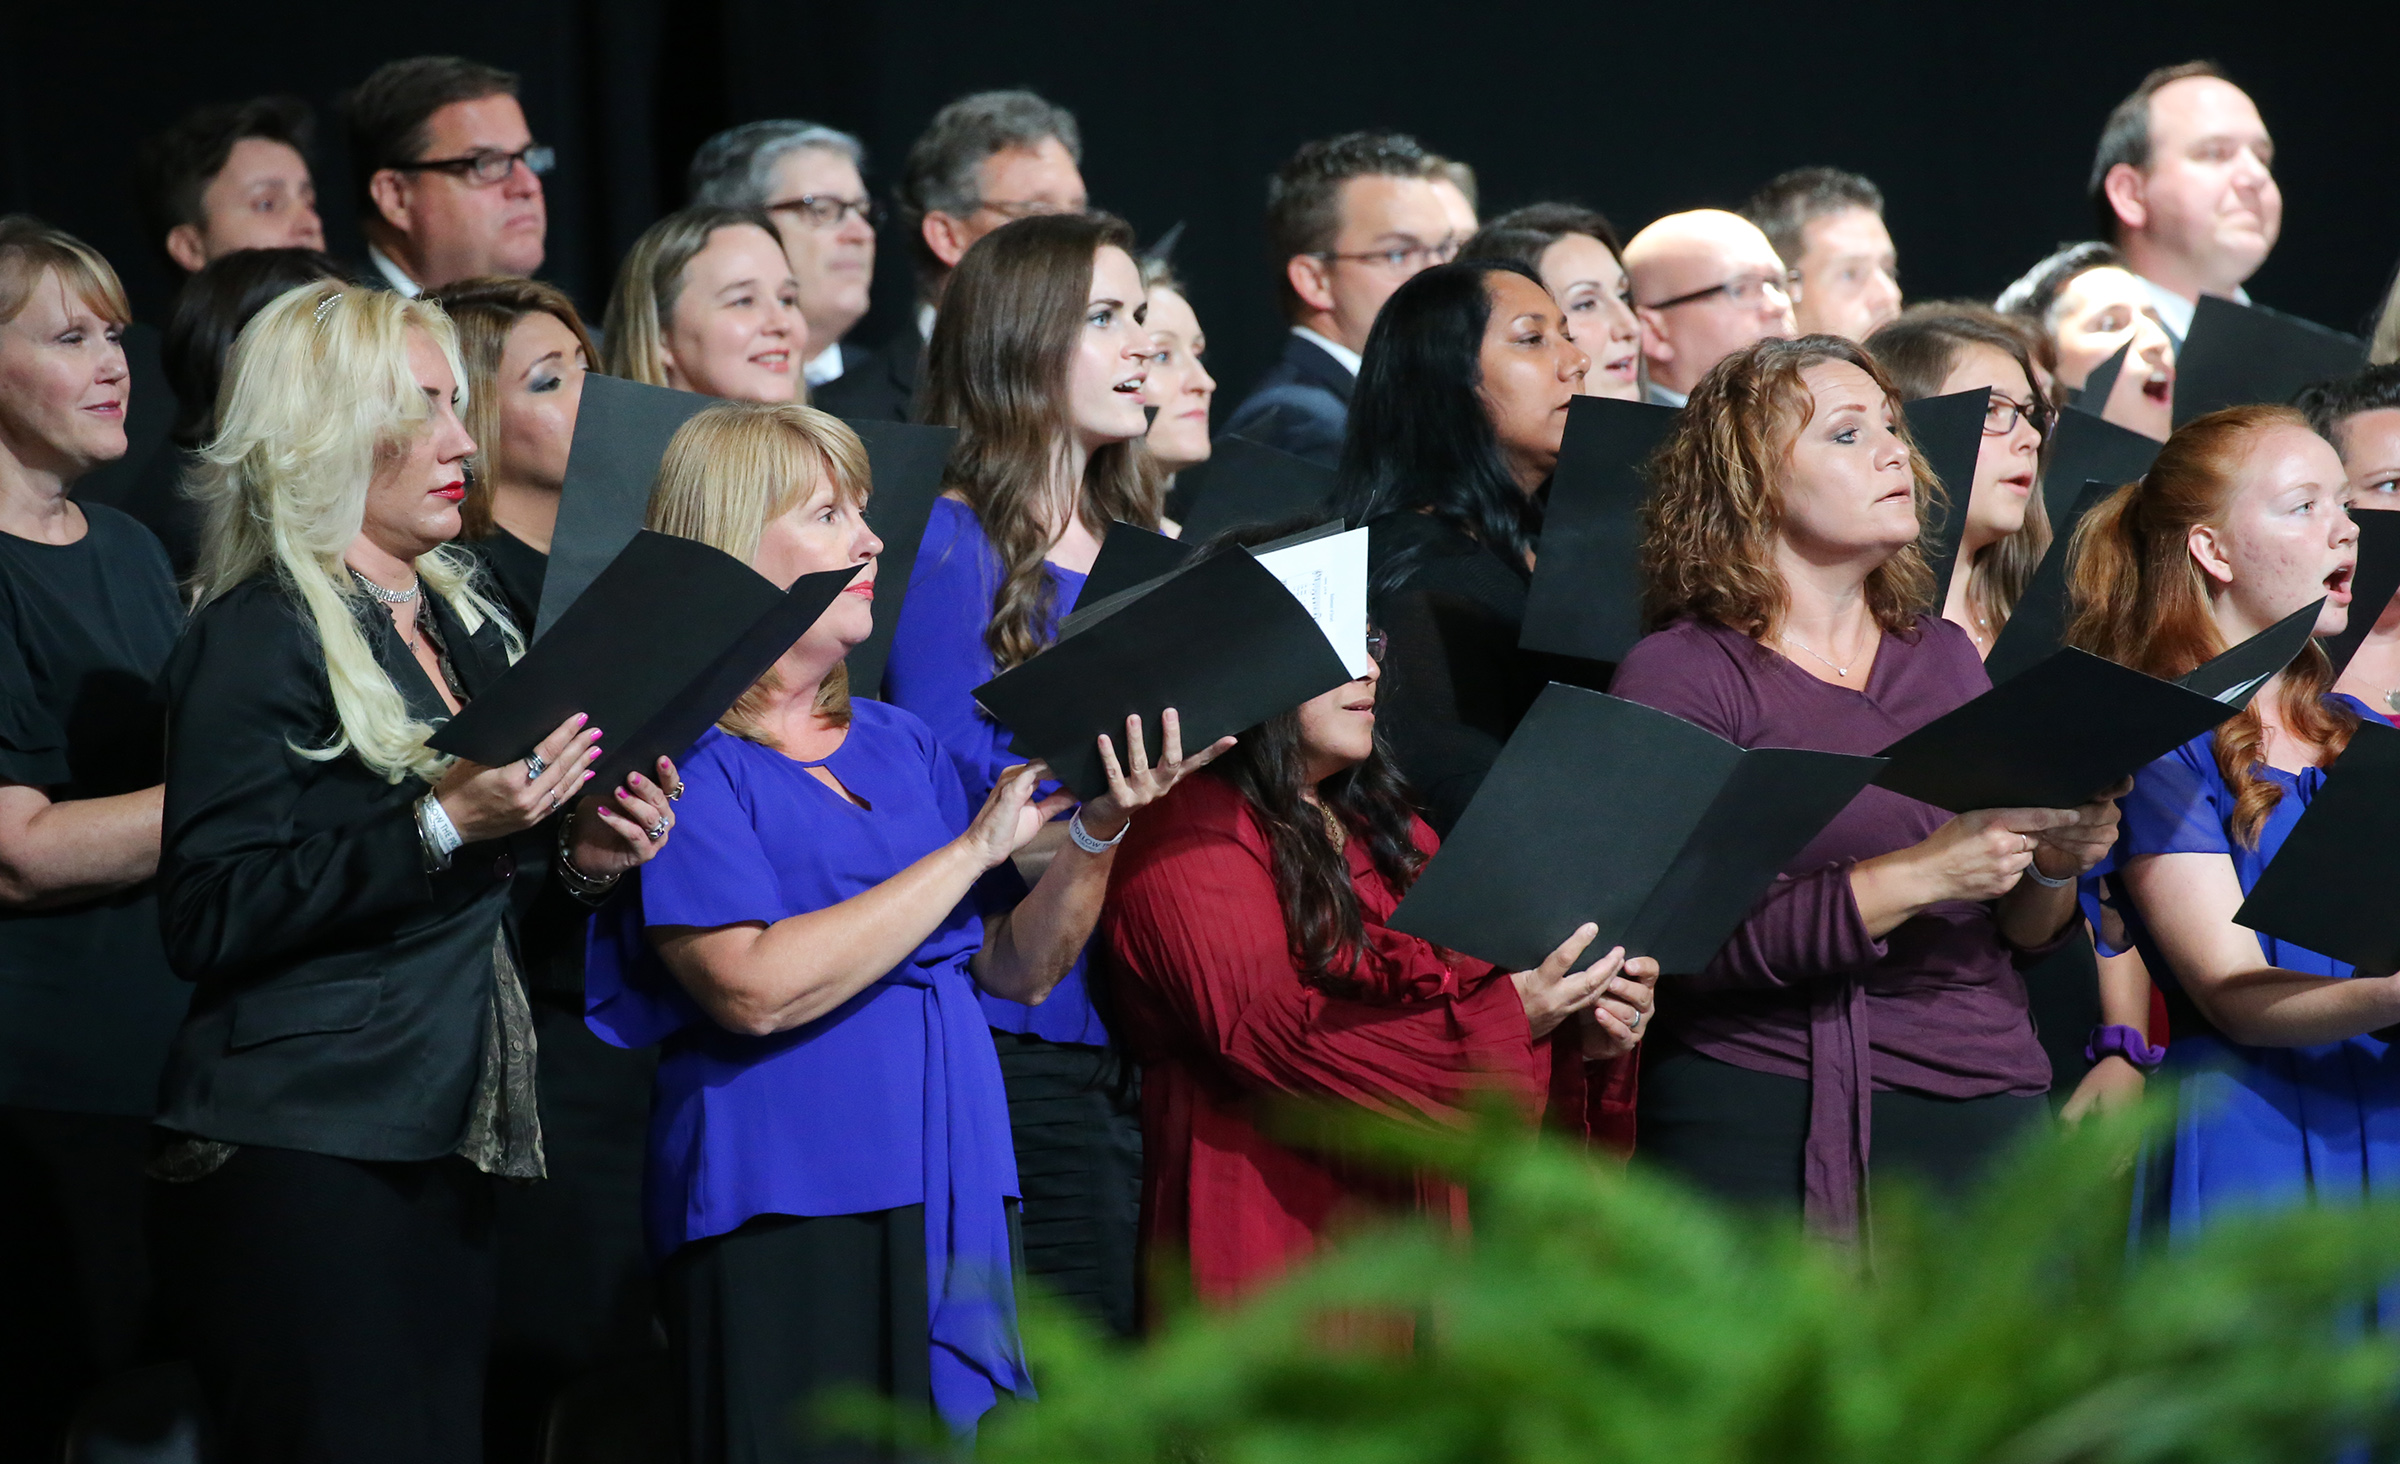 Choir members sing at a devotional with President Russell M. Nelson and others at the Amway Center in Orlando, Florida, on Sunday, June 9, 2019.